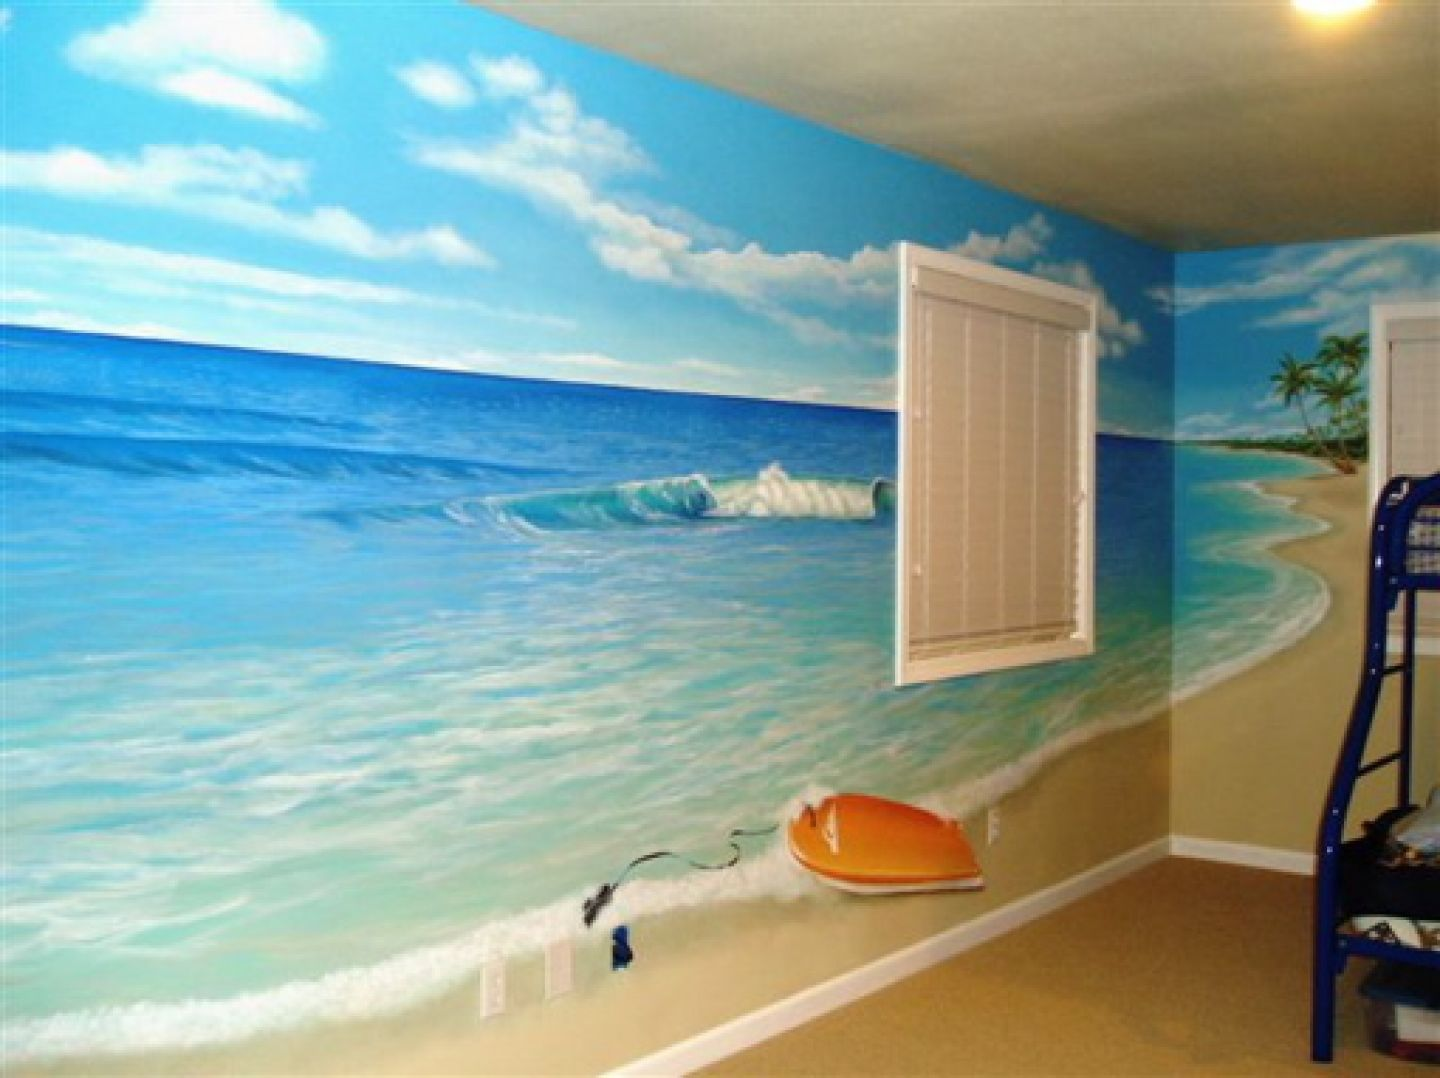 BEACH MURAL IDEAS TO PAINT ON DIVIDER WALL | tags beach beach ...